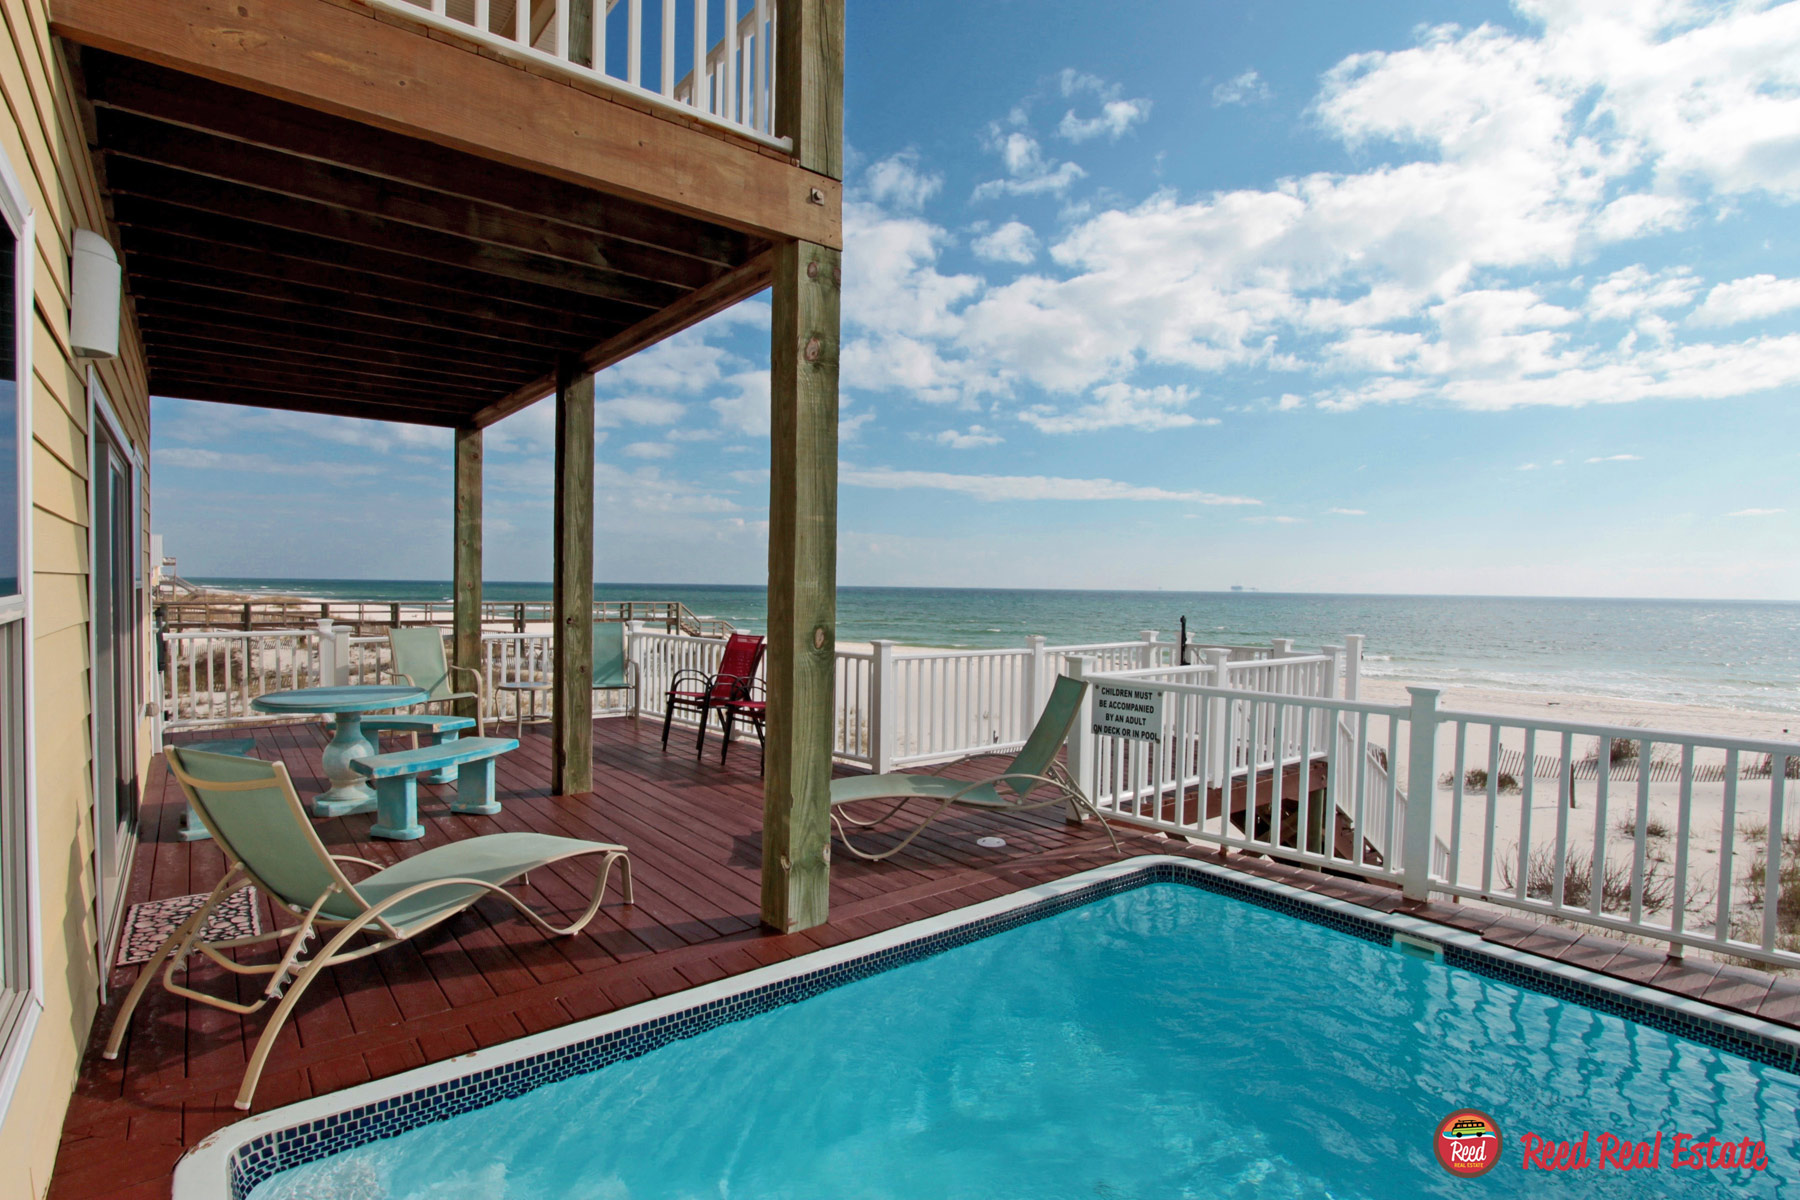 Large partially covered deck with pool